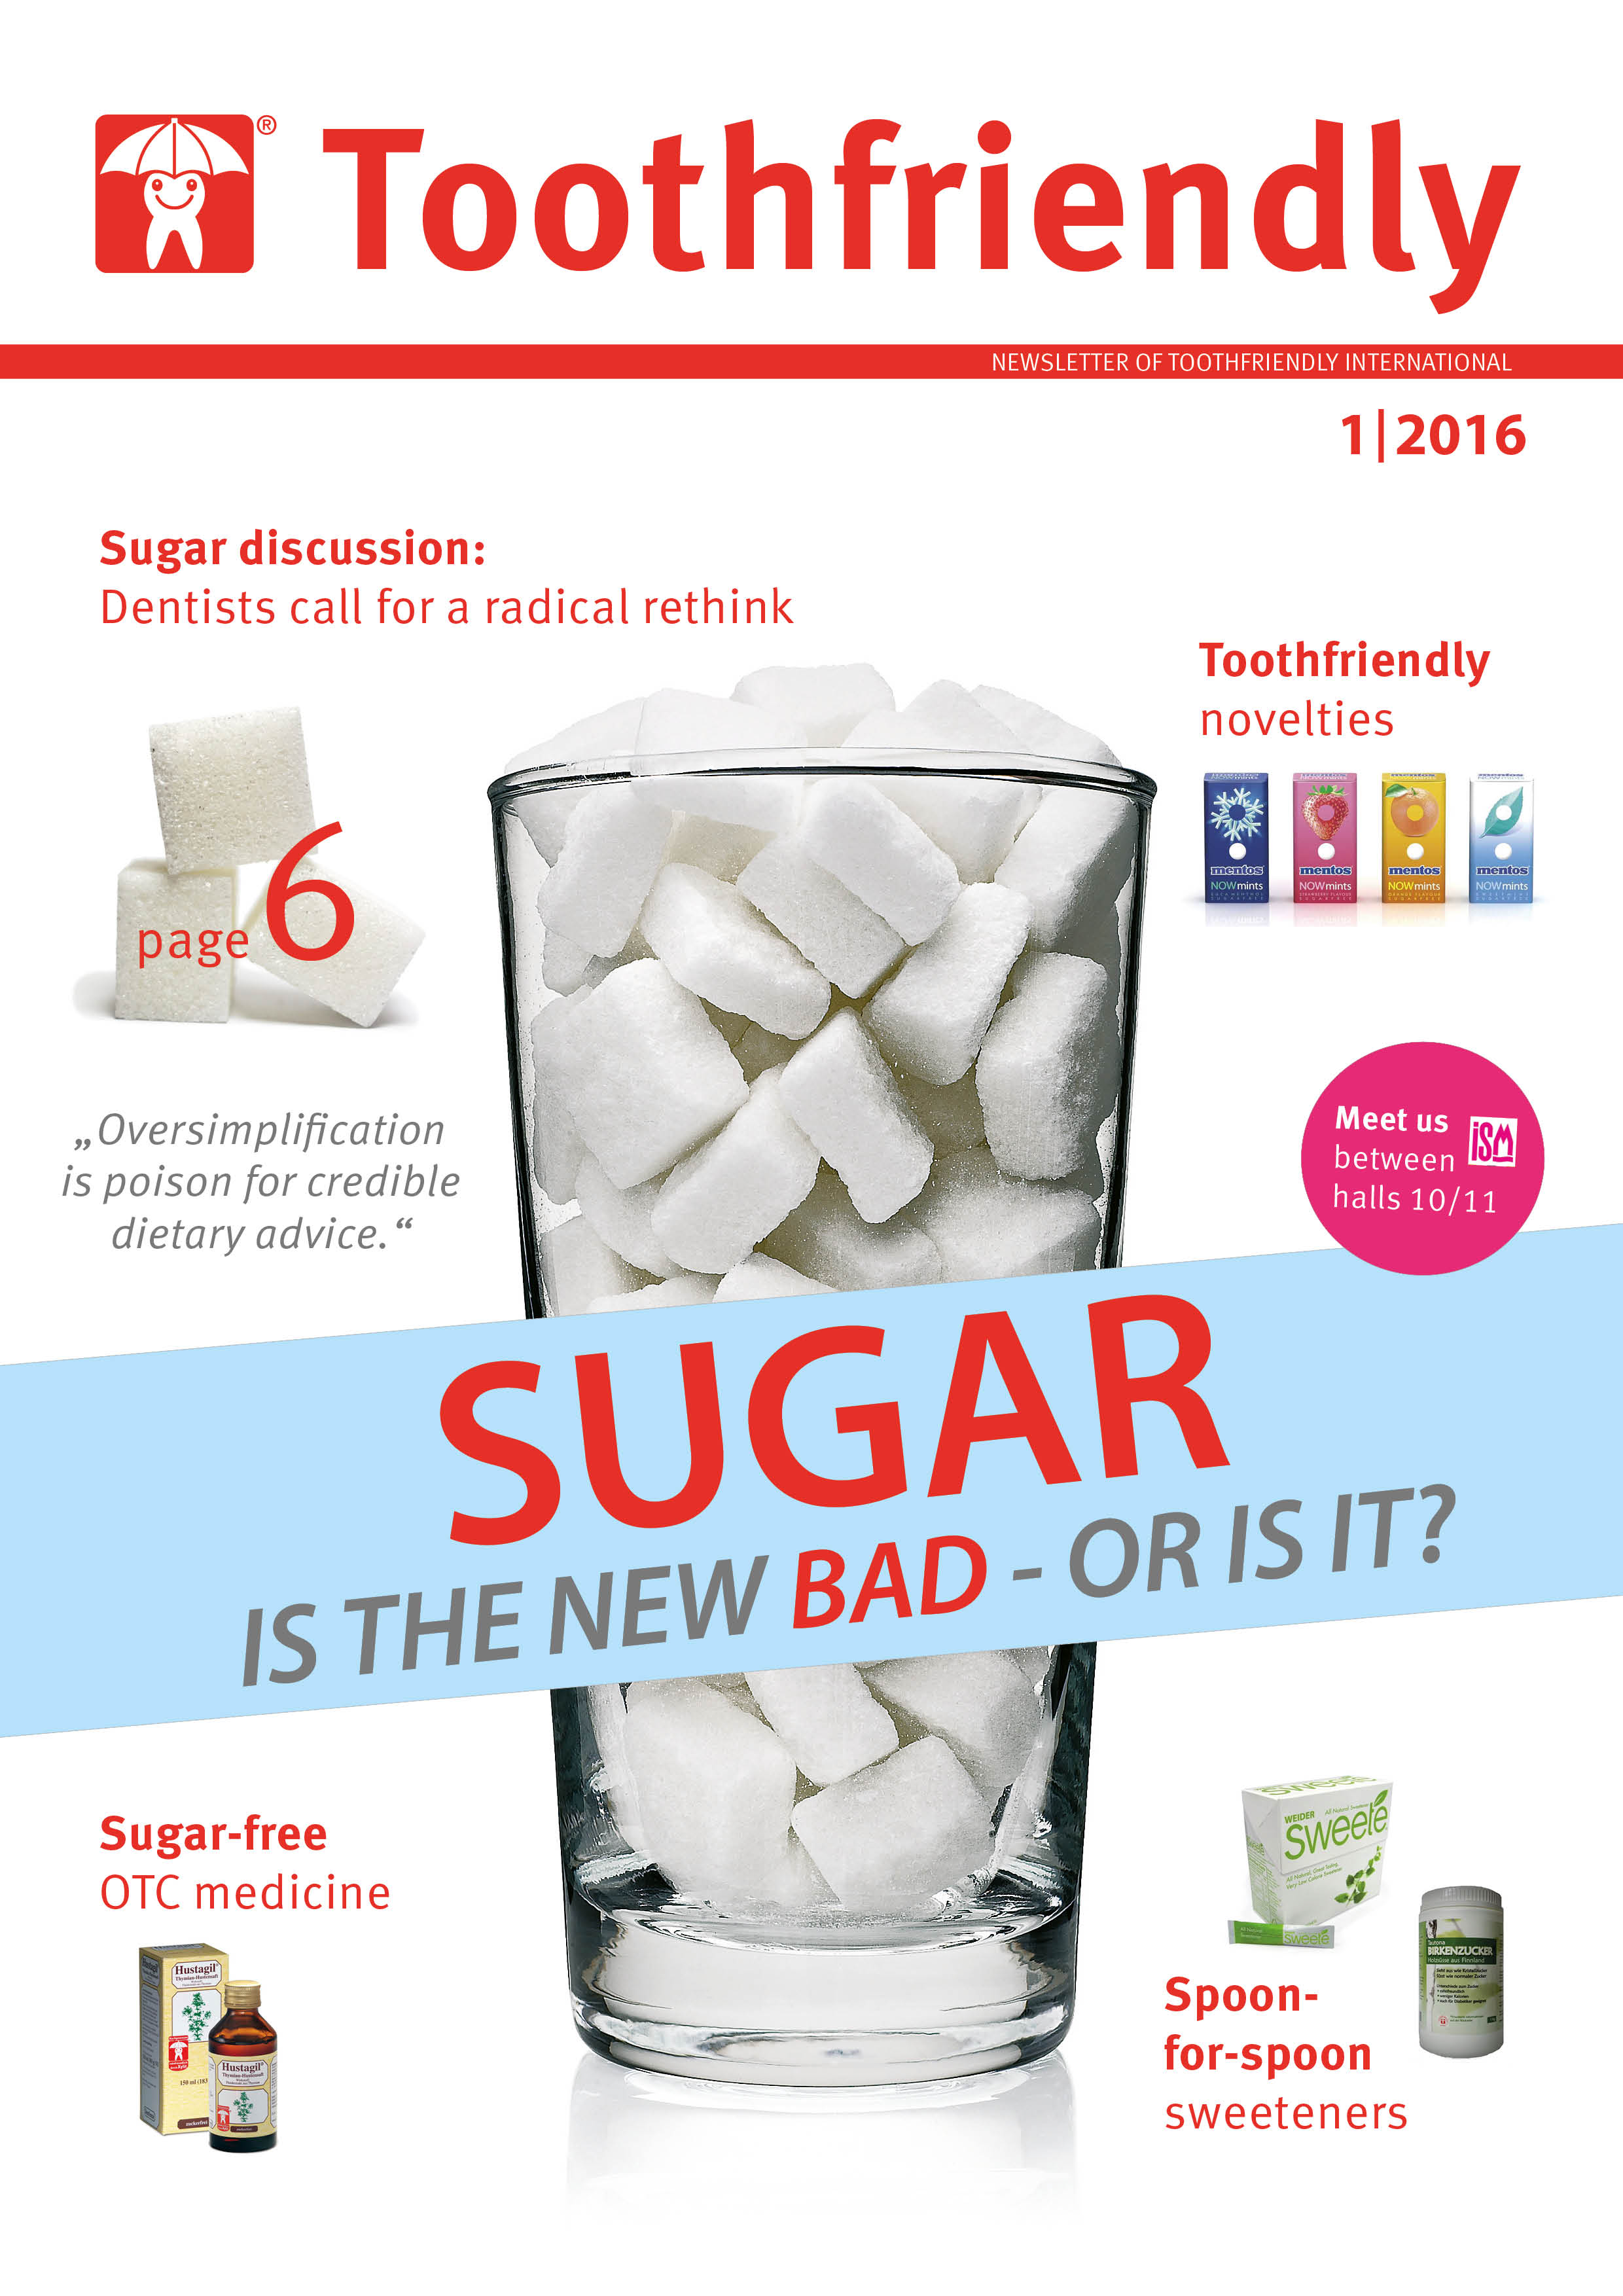 ToothfriendlyNewsletter2016Cover